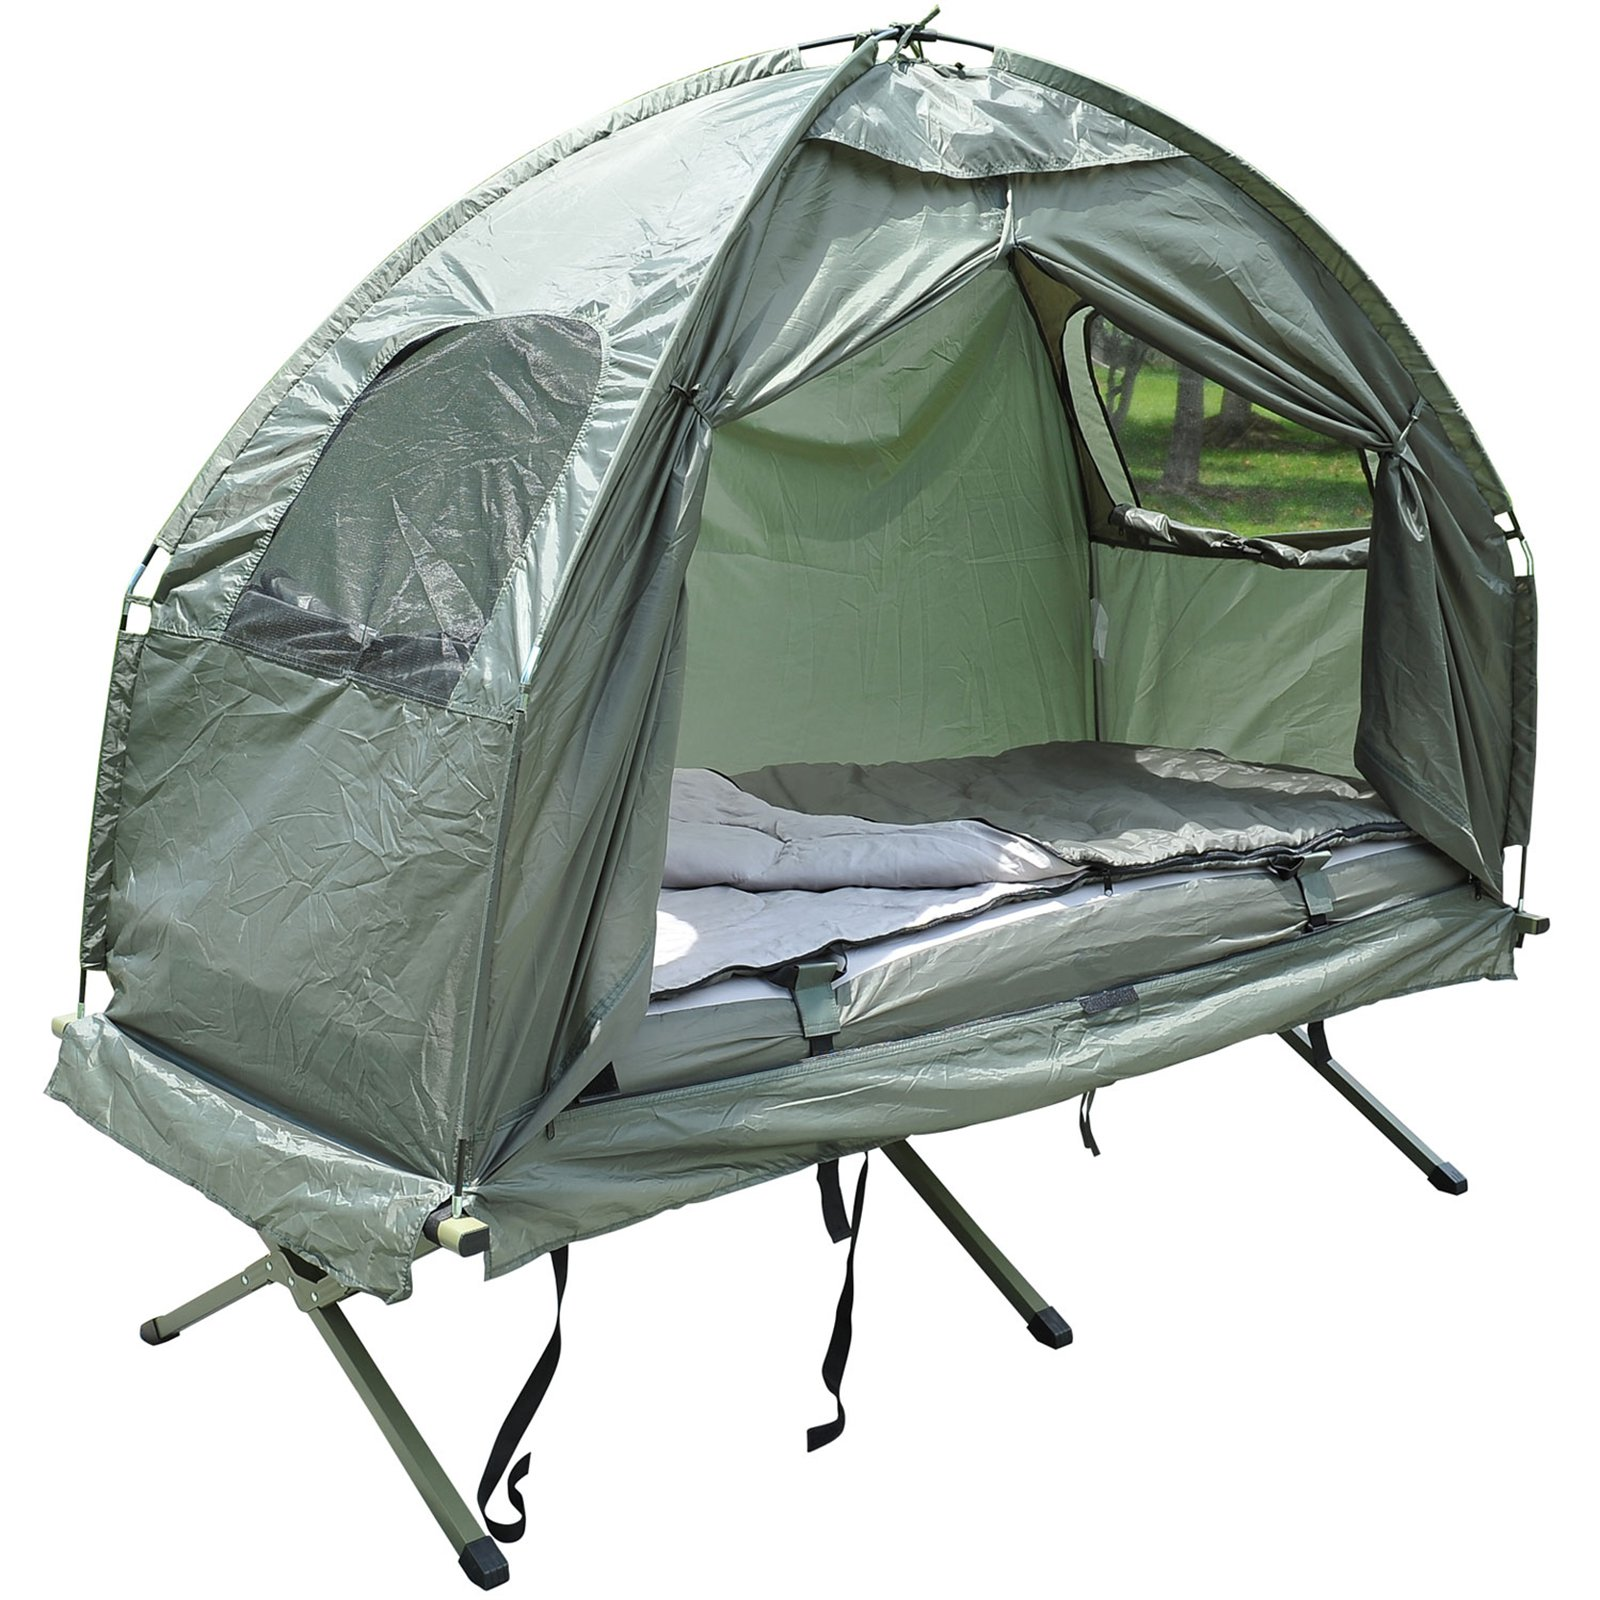 Outsunny Air Mattress Sleeping Bag Combo Pop Up Tent Cot  sc 1 st  Walmart : pop ip tent - memphite.com